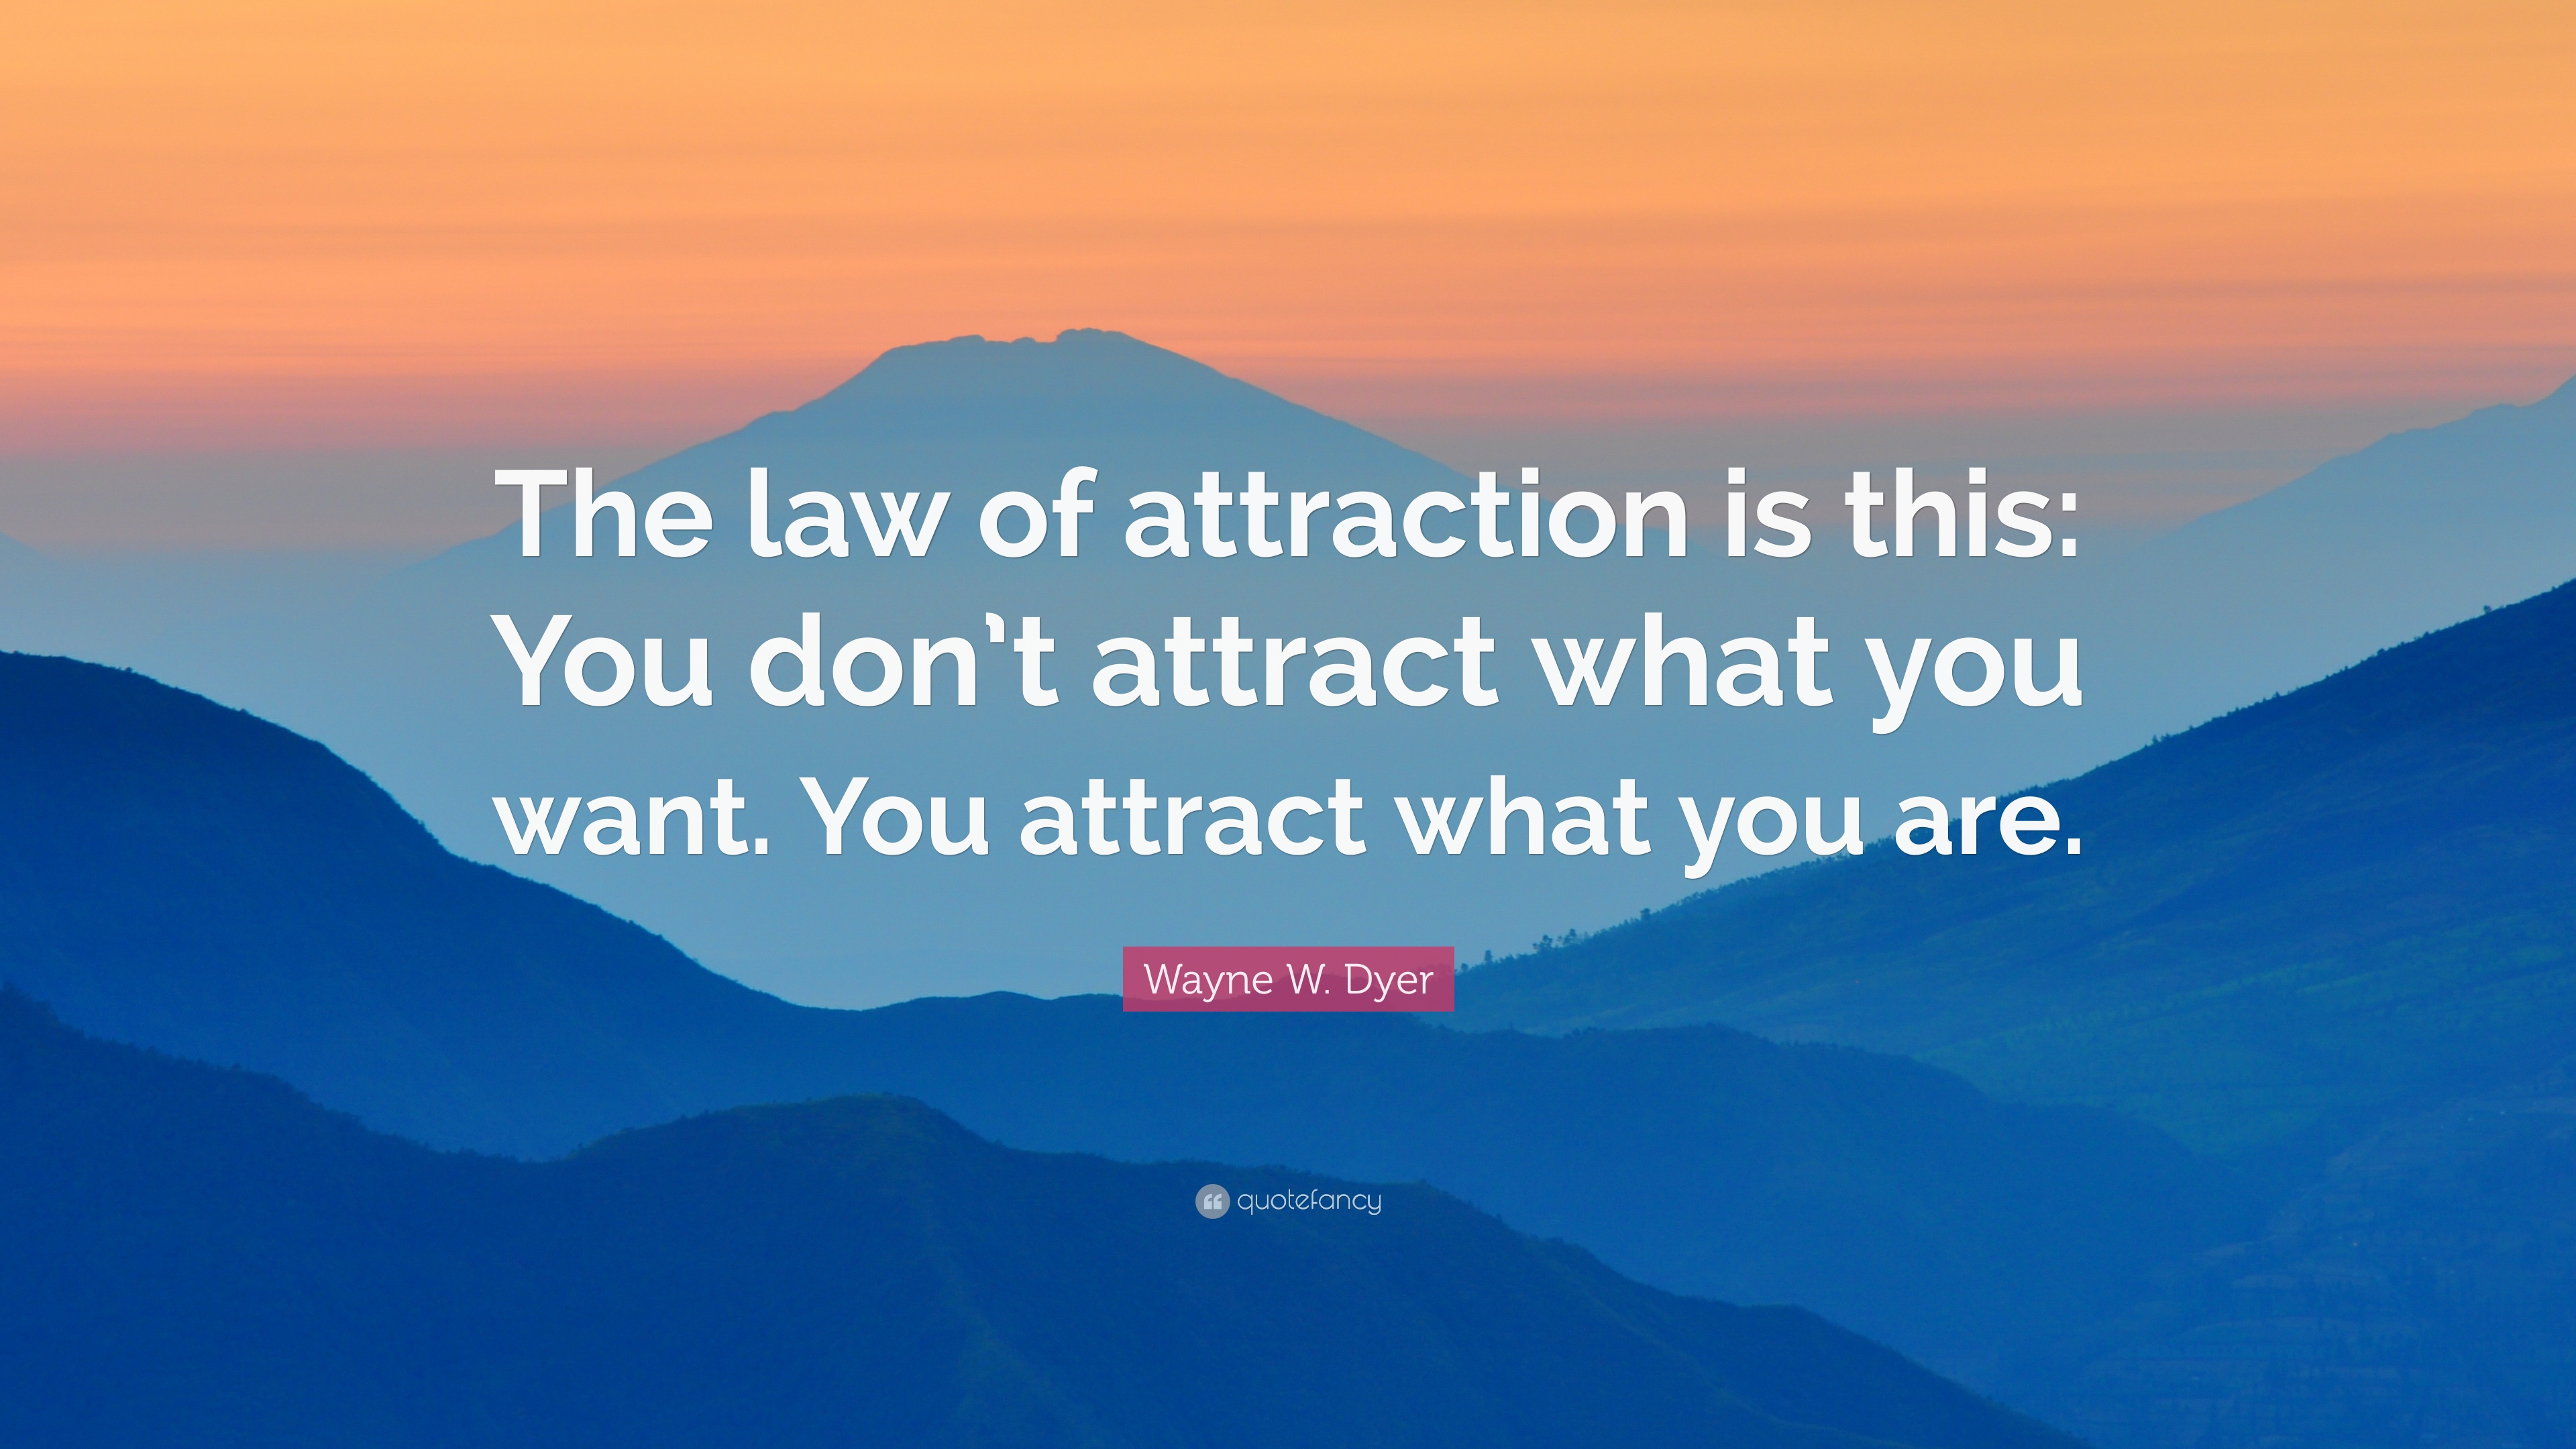 436172-Wayne-W-Dyer-Quote-The-law-of-attraction-is-this-You-don-t-attract